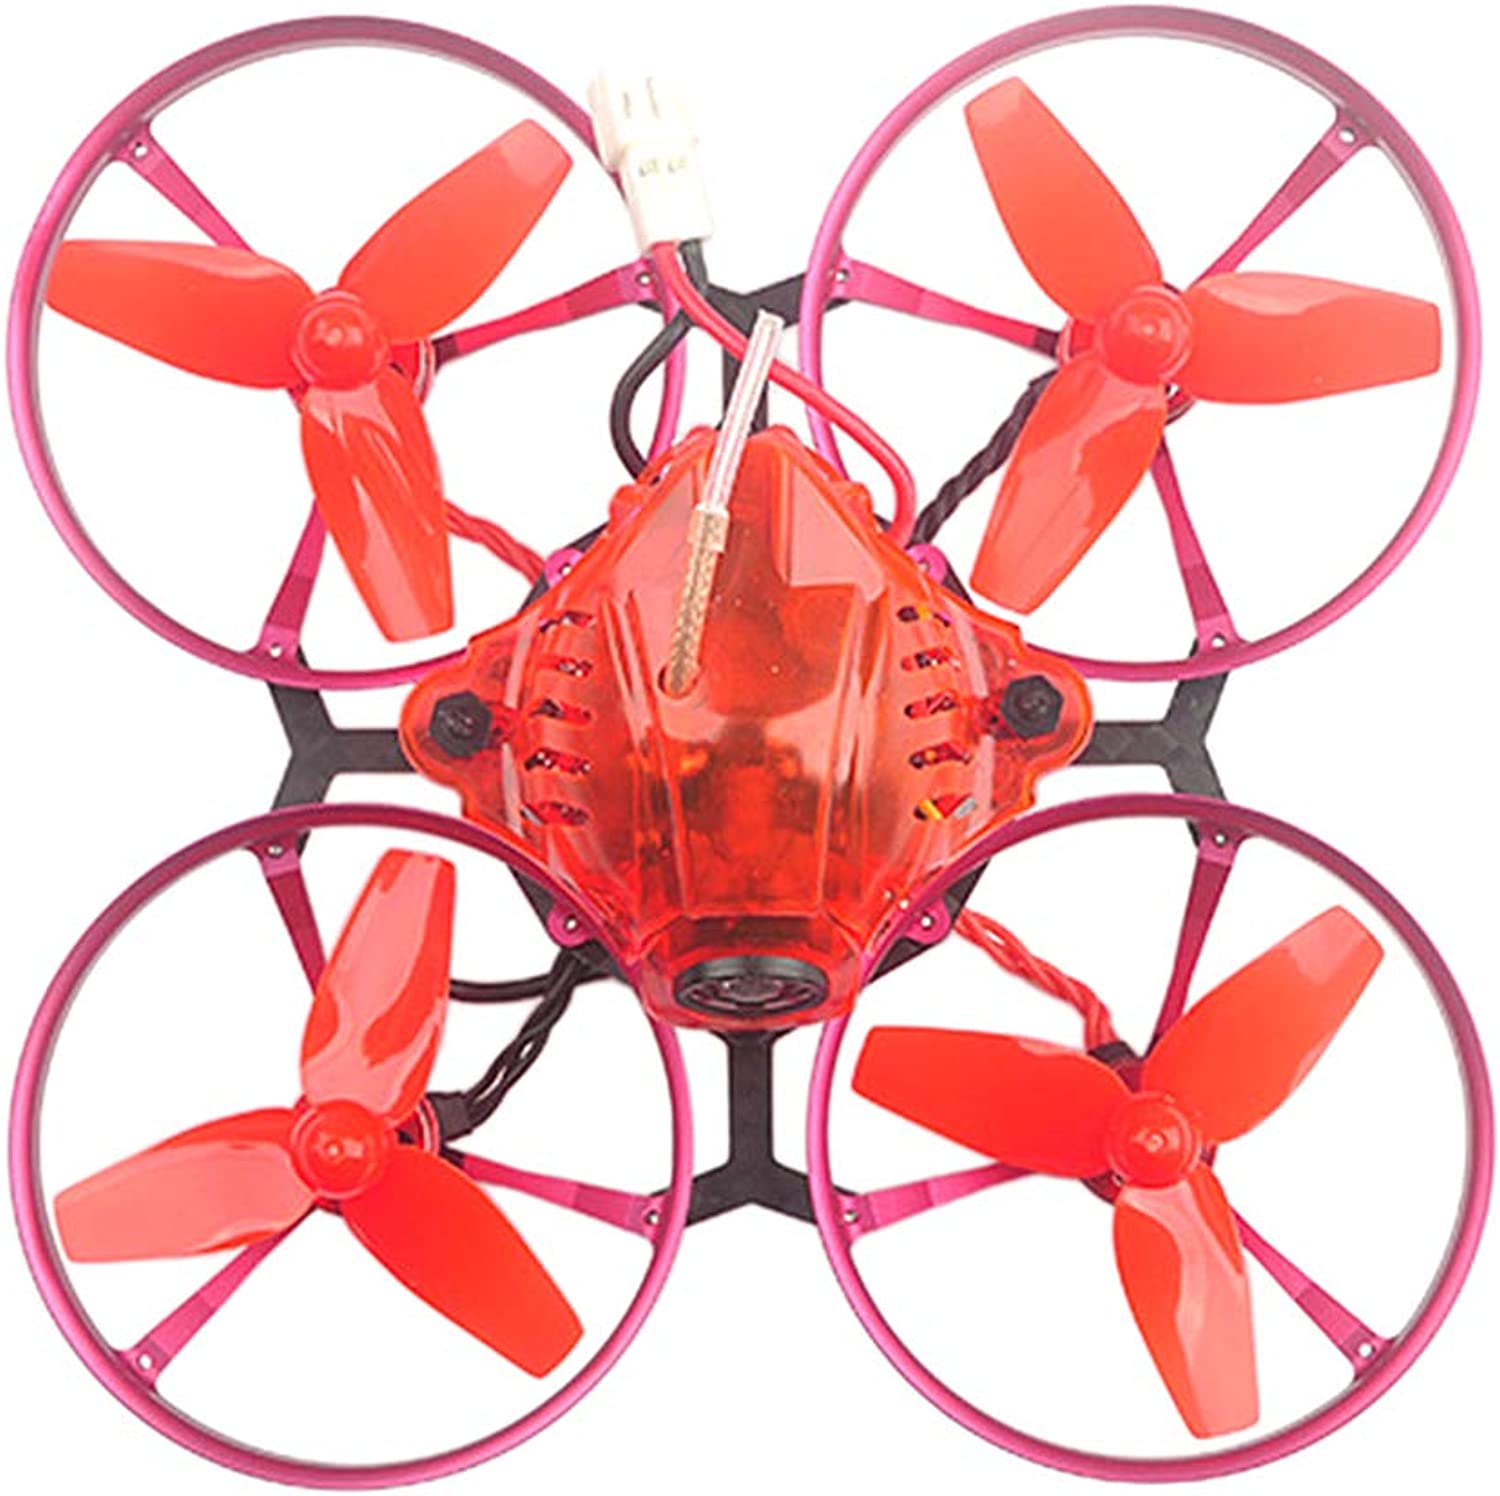 B Blesiya Happymodel Snapper7 75mm Brushless Hobby FPV Racing Drone Aircraft Frsky BNF